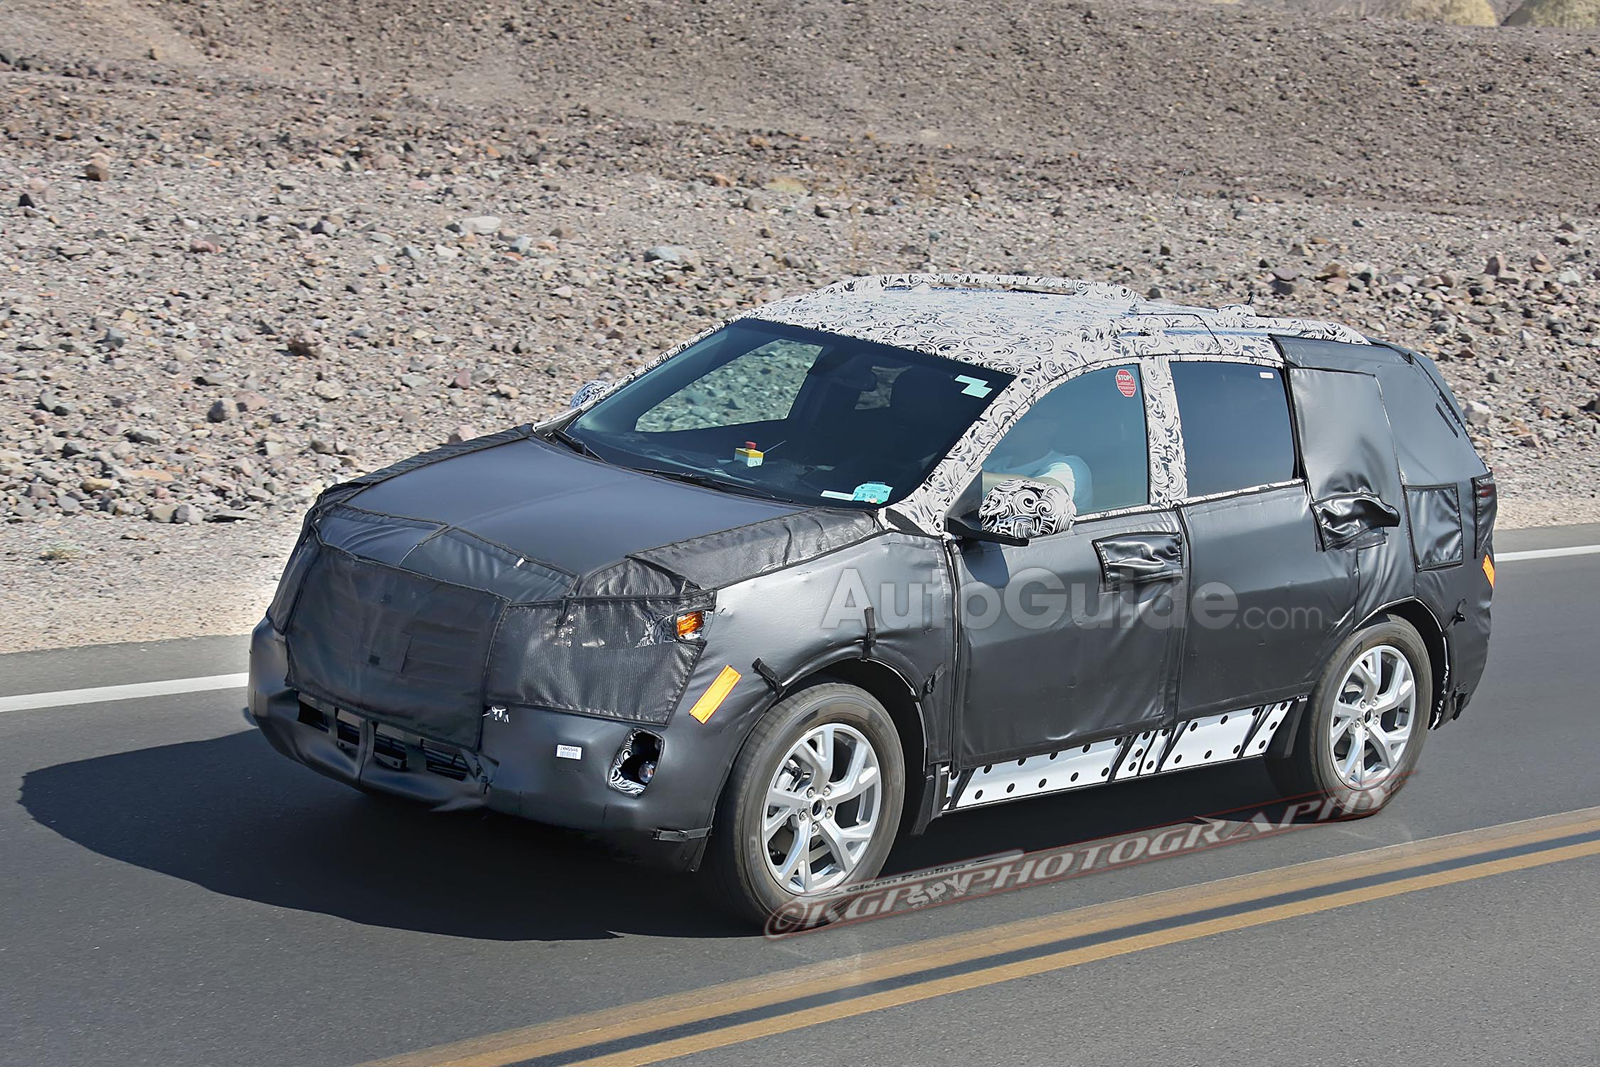 2017 Chevy Equinox Redesign Autos Release | 2017 - 2018 Best Cars ...